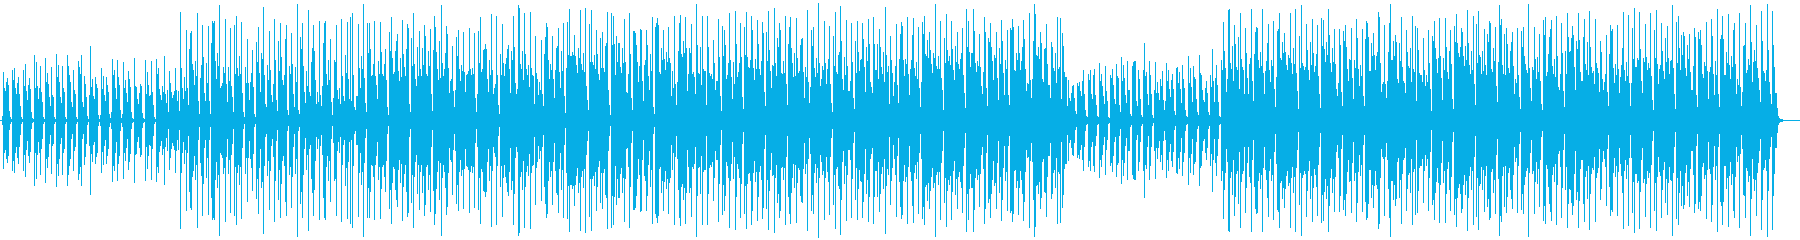 On the way home, leisurely, everyday, ukulele, whistling's reproduced waveform